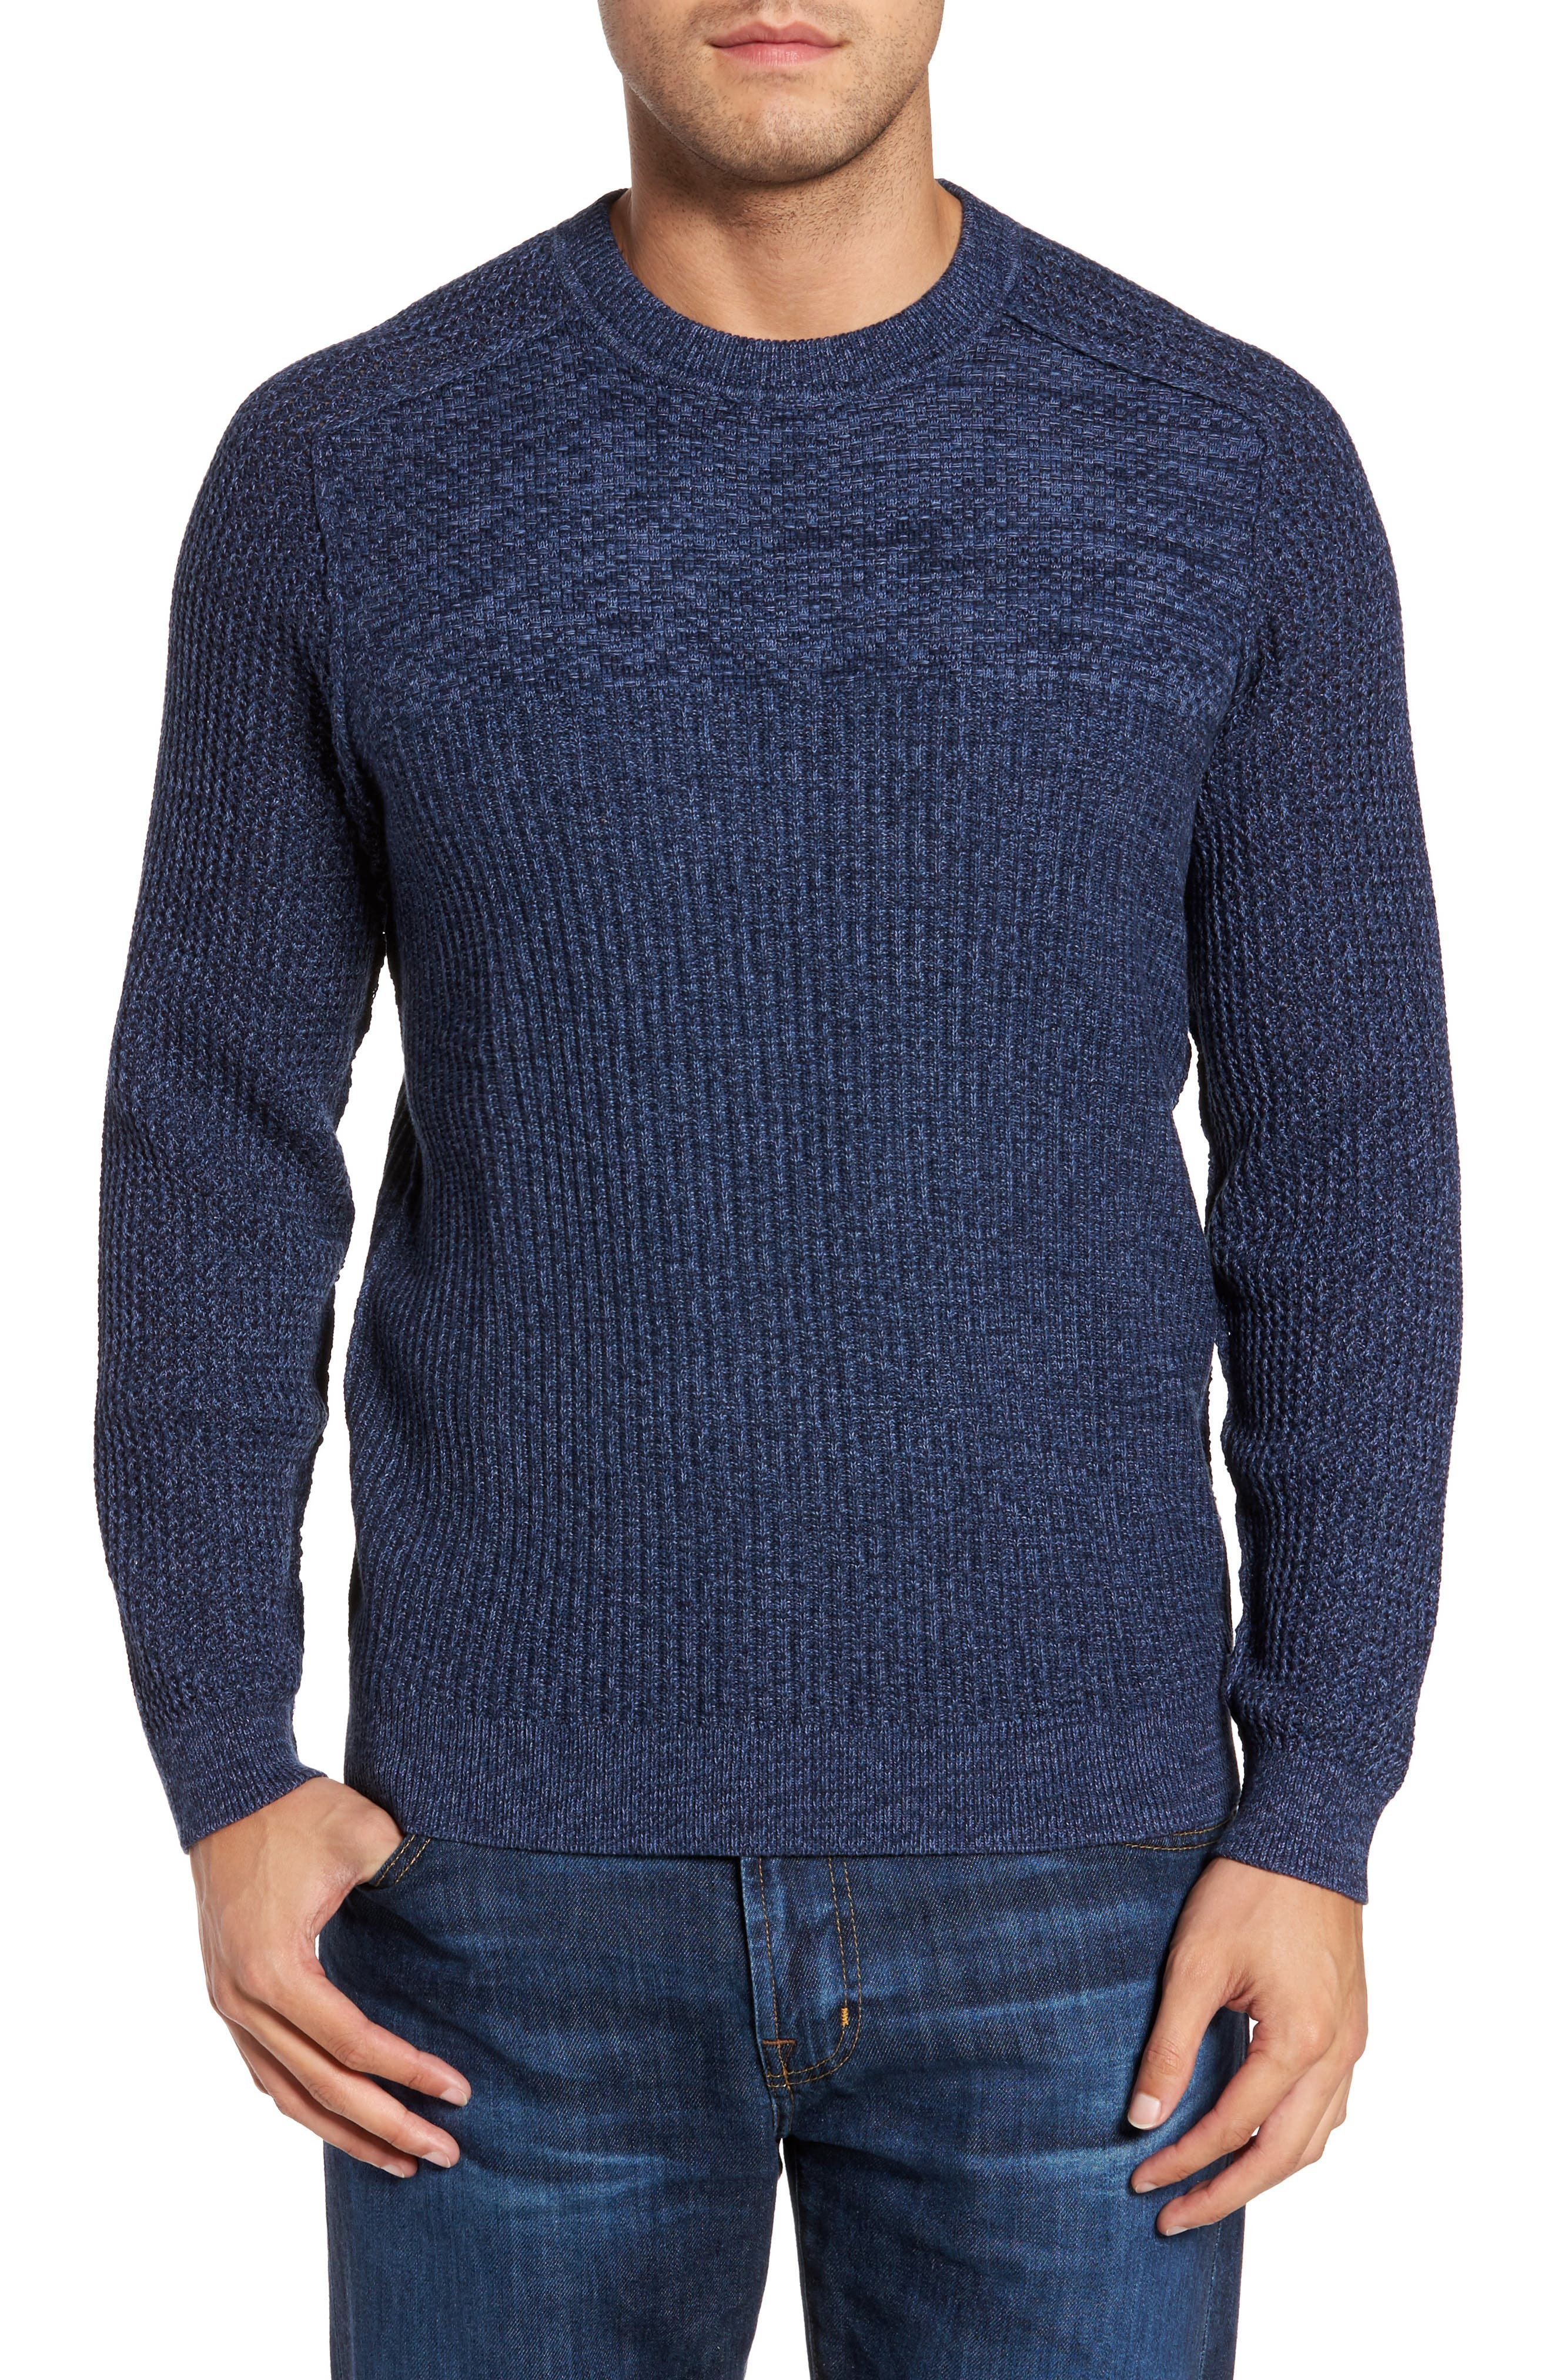 Tommy Bahama Medina Marl Cotton Sweater